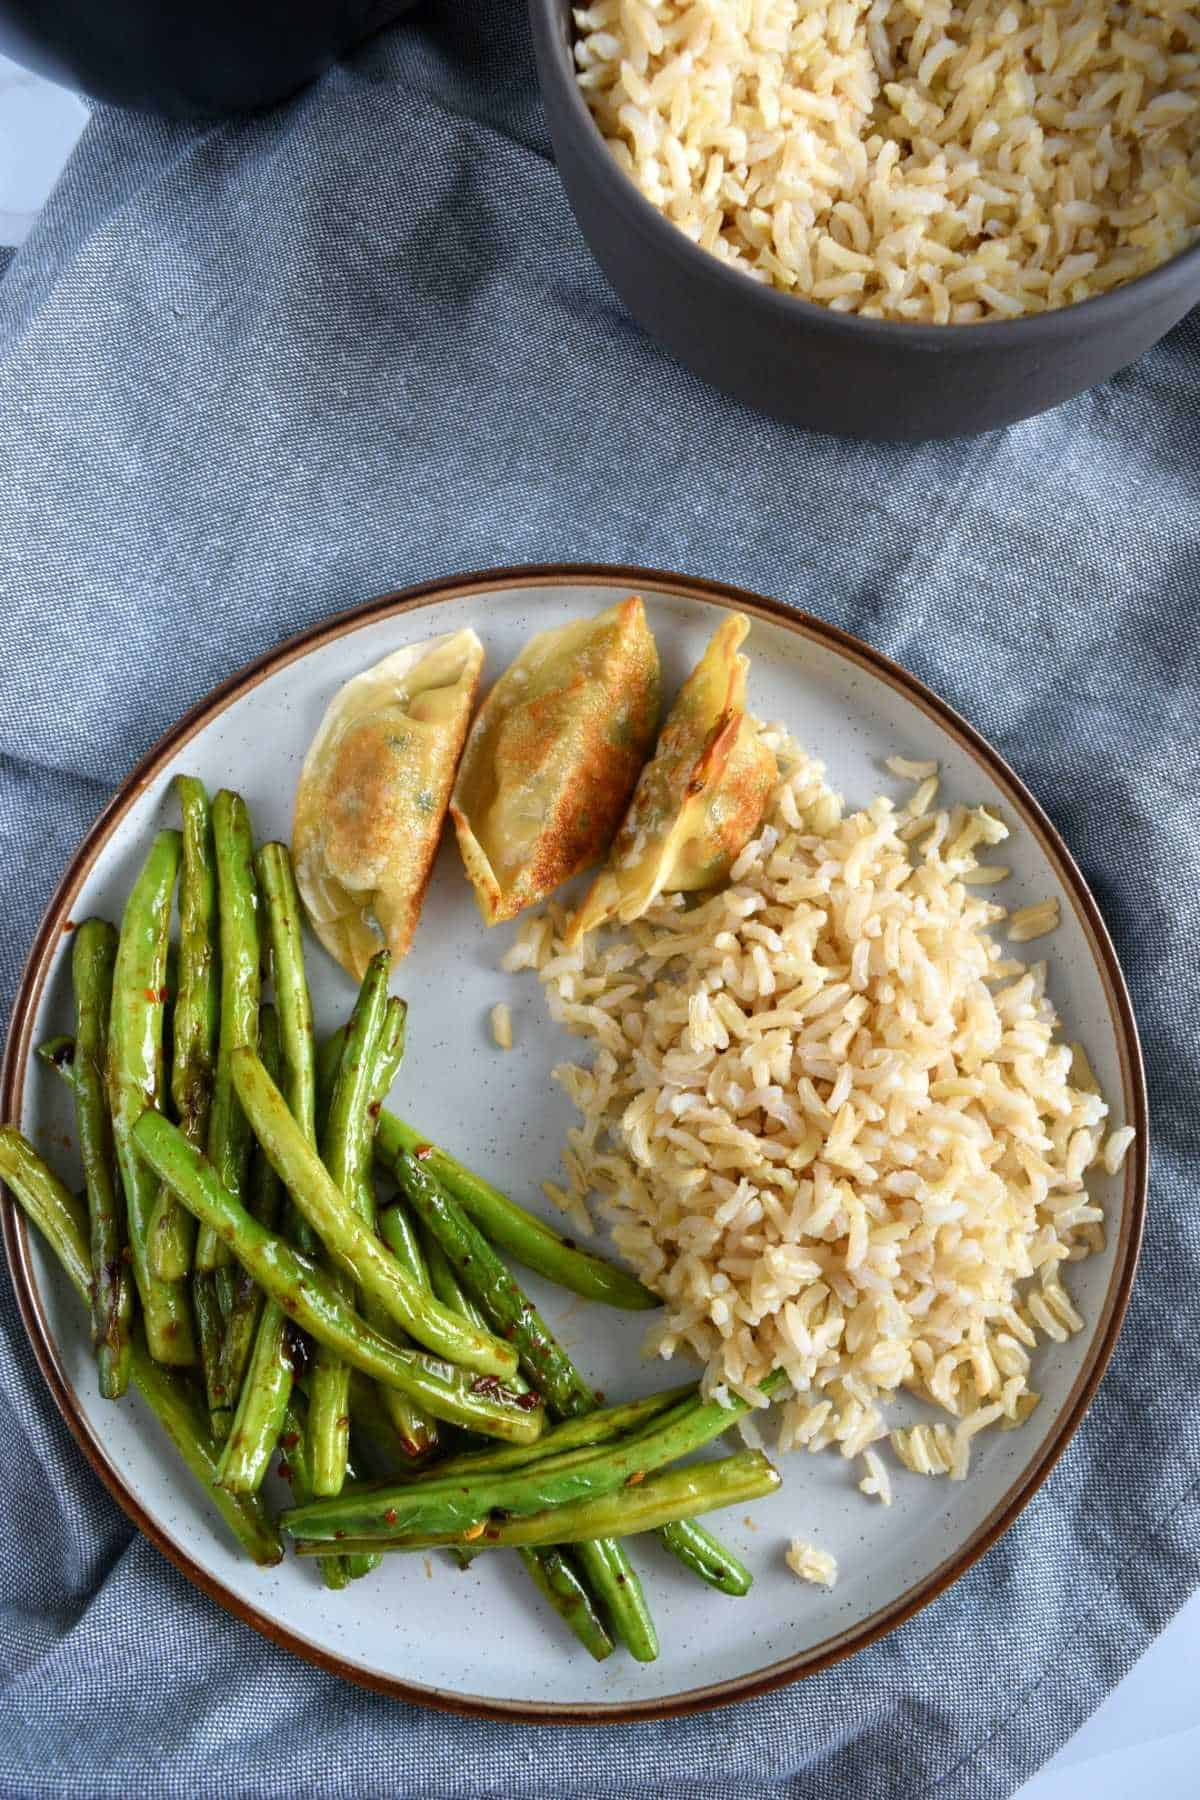 Green beans, potstickers and rice on a plate with a bowl of rice in the background.